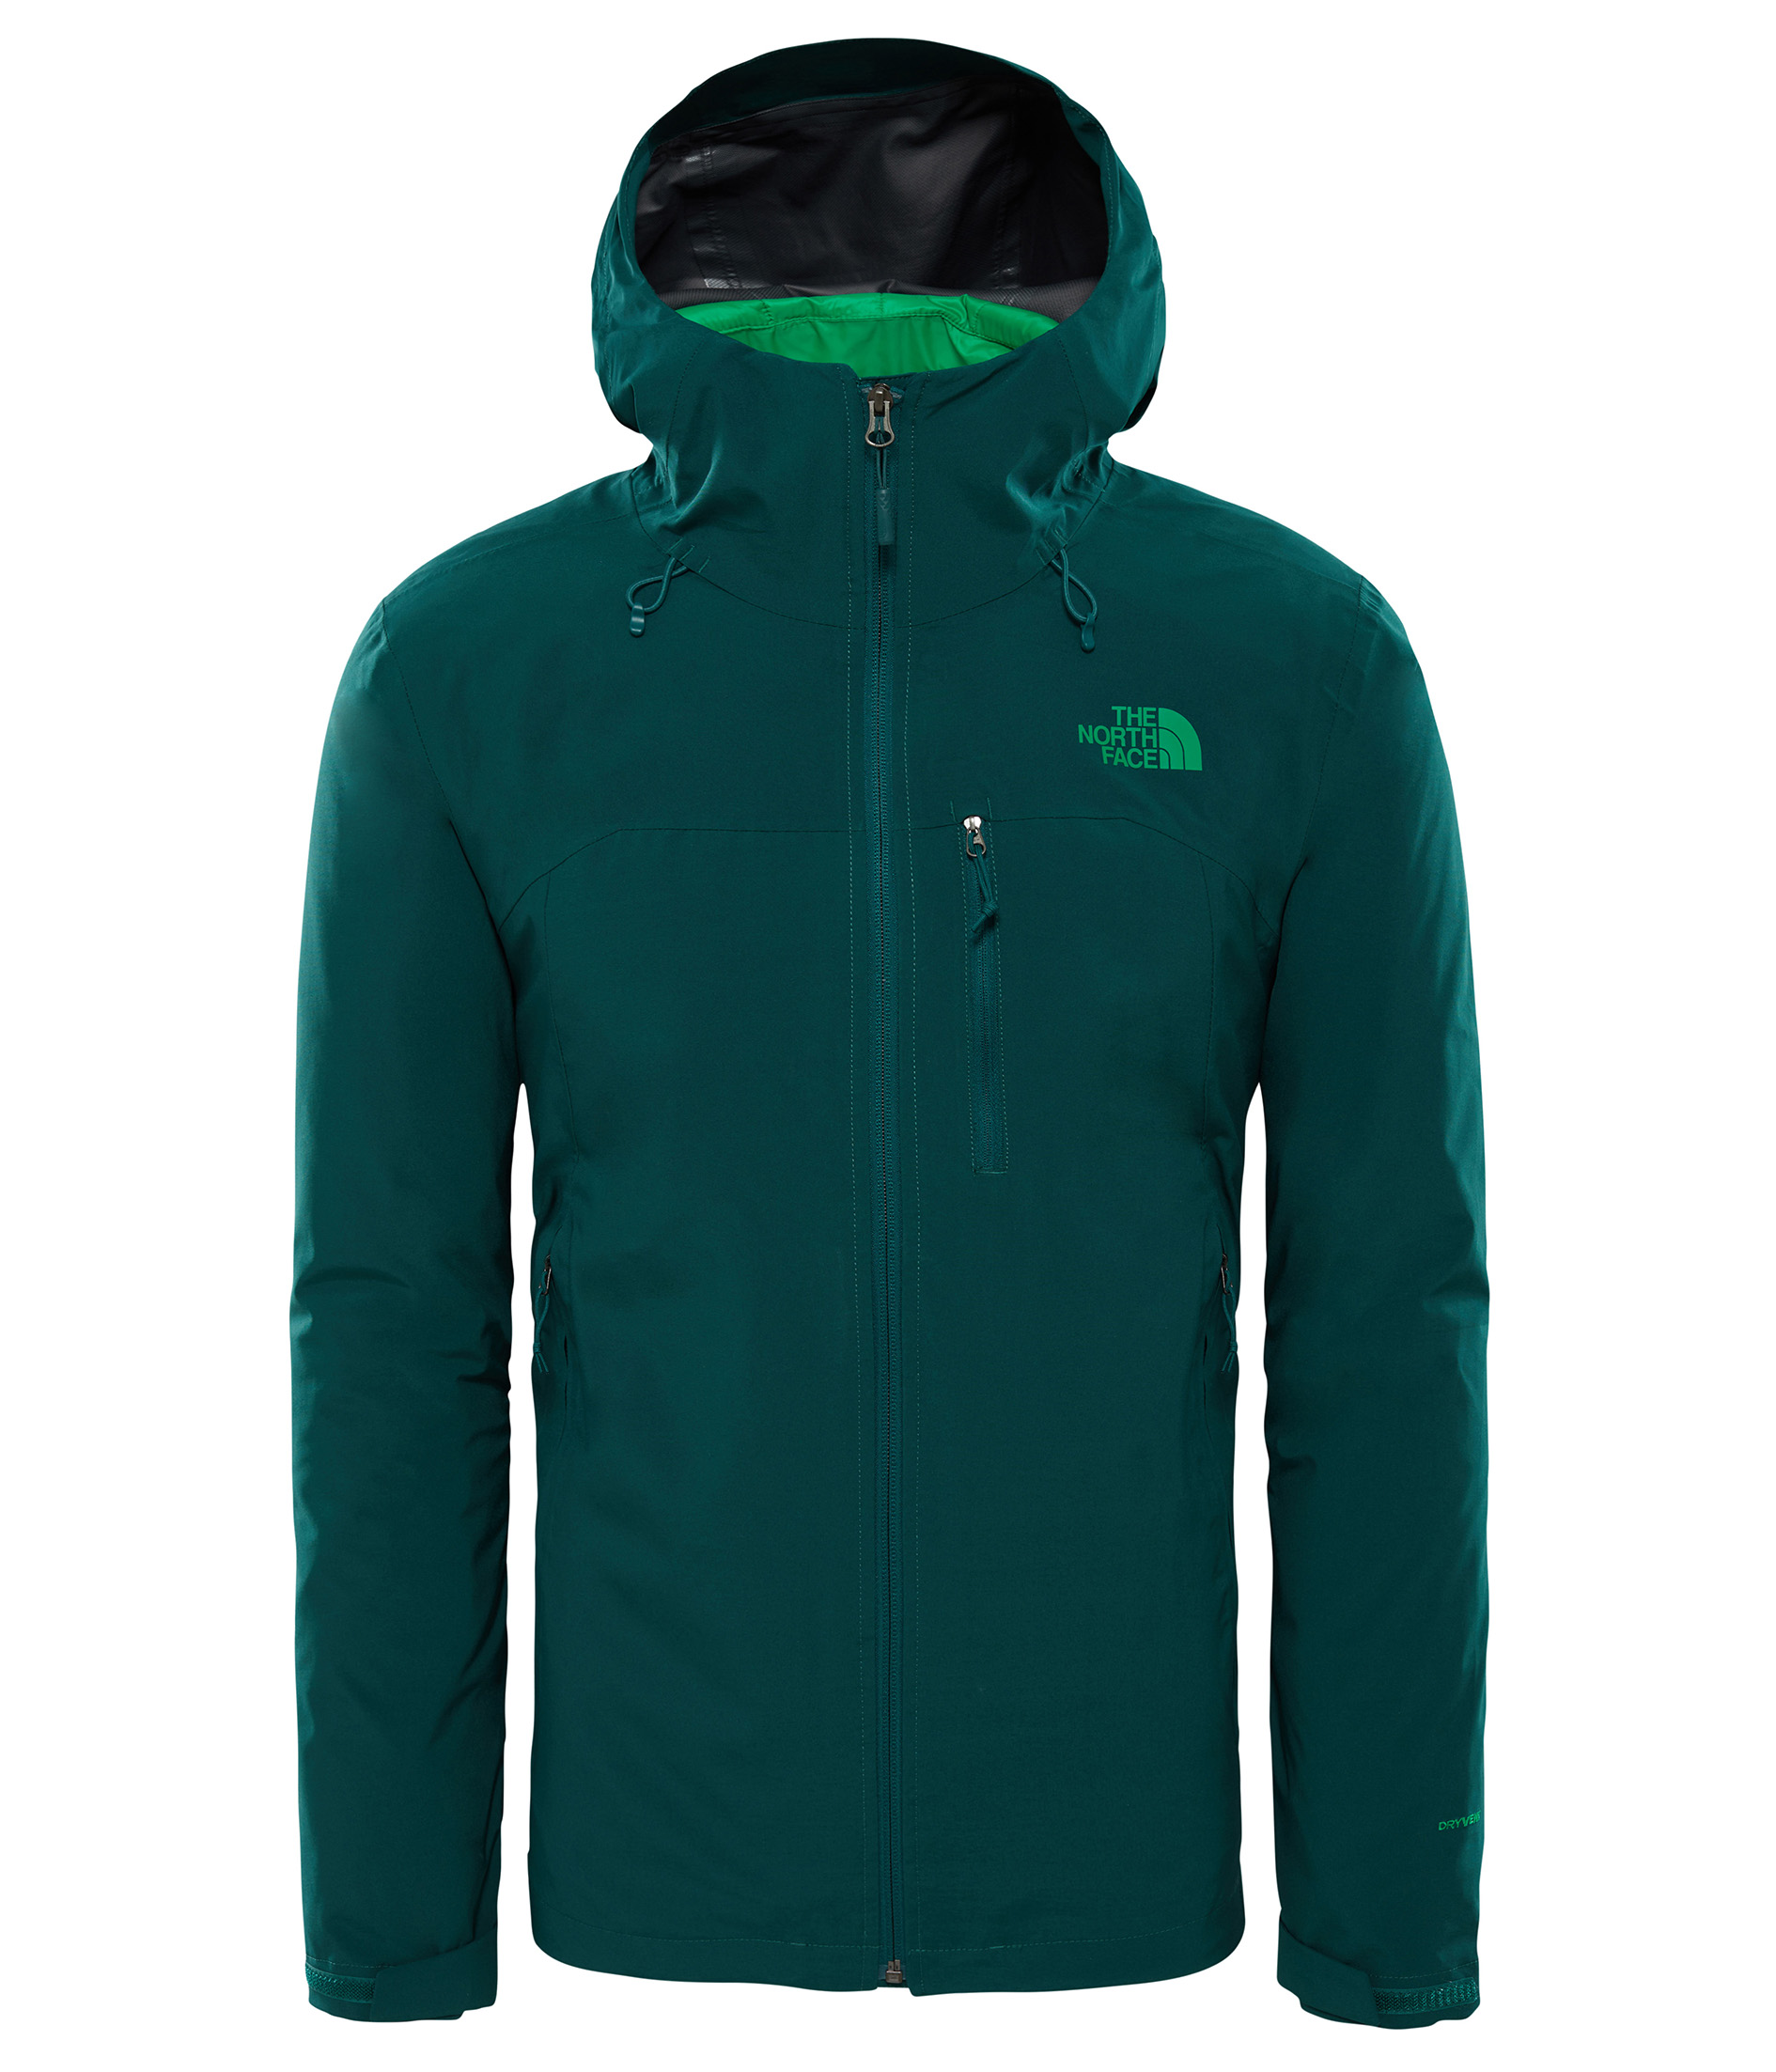 THE NORTH FACE M THERMOBALL™ TRICLIMATE® JACKET, BOTANICAL GARDE velikost: M